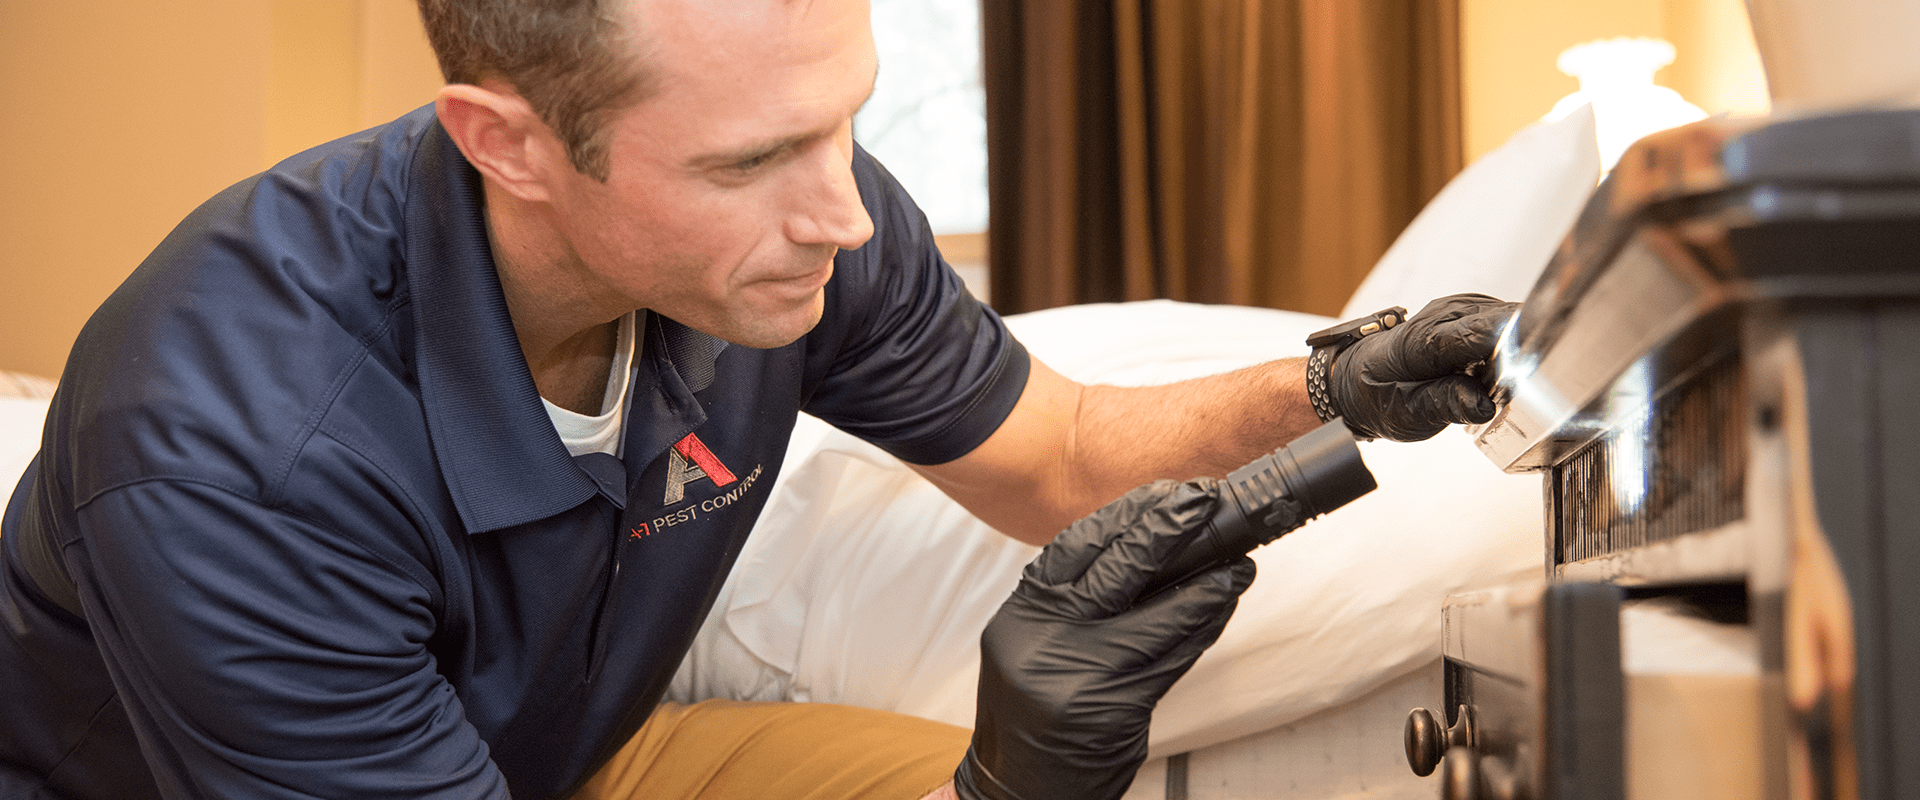 a-1 technician inspecting bedroom furniture for bed bugs